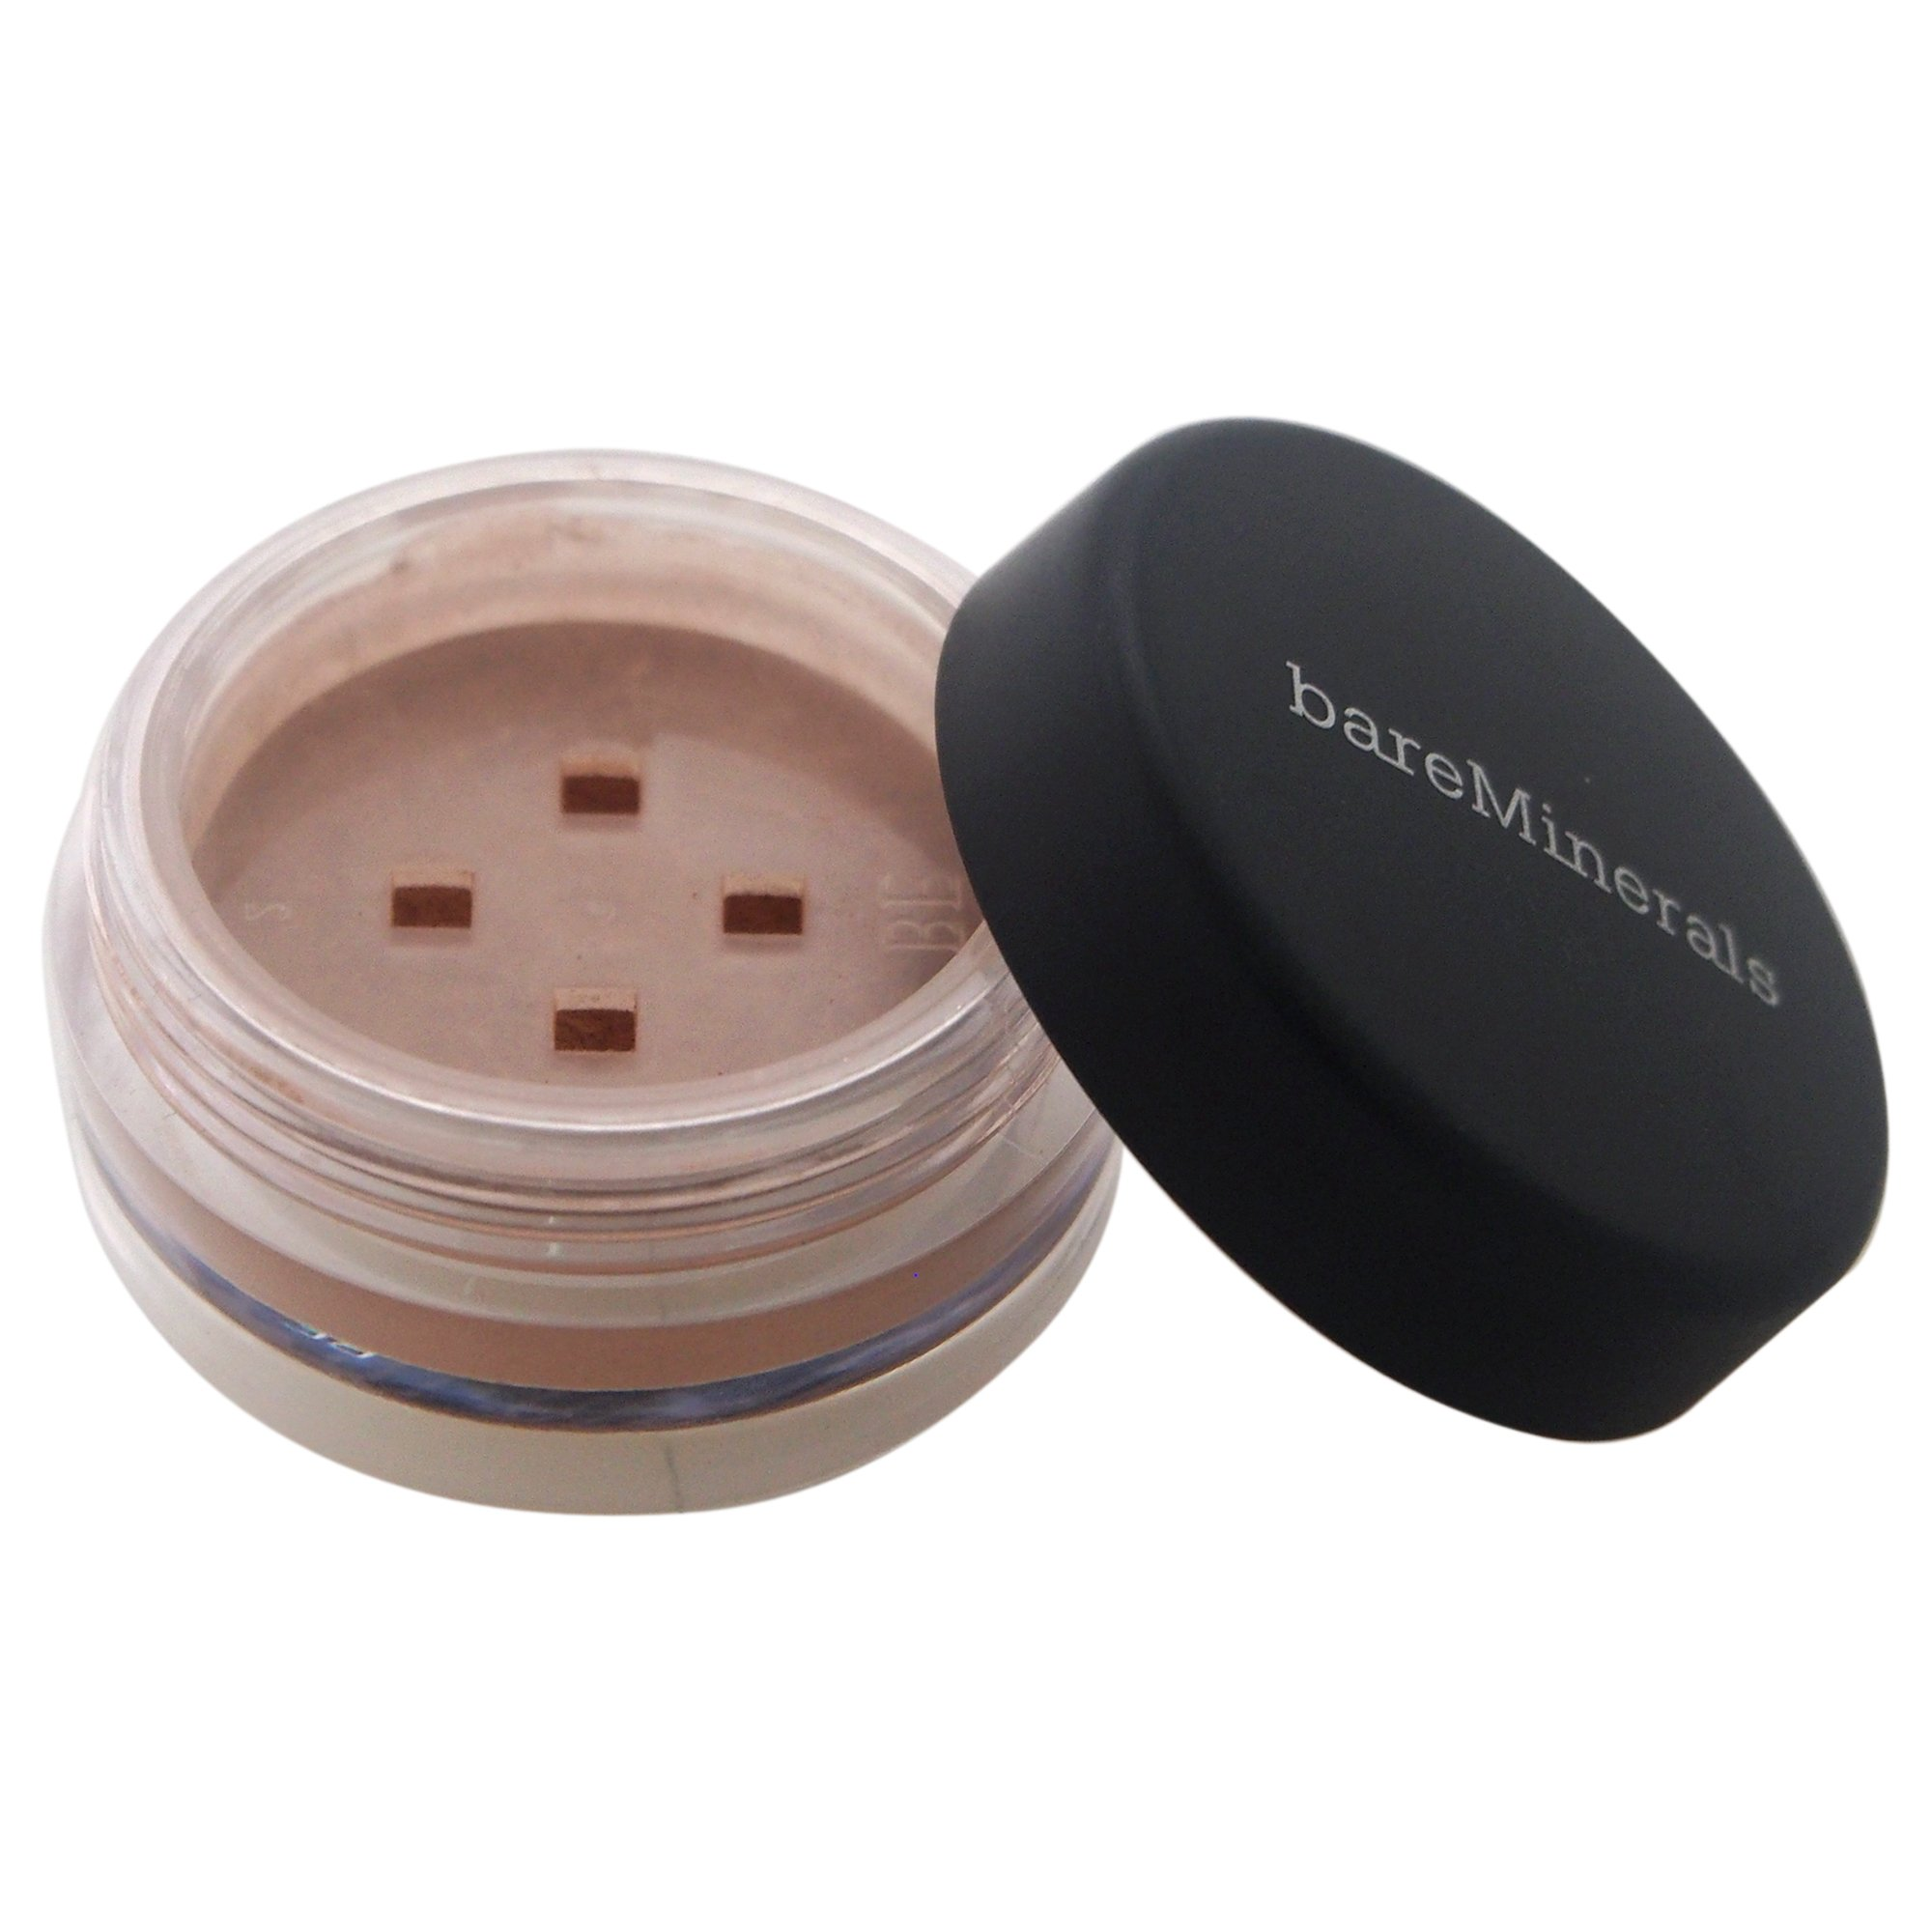 bareMinerals Pebble Eye Color for Women, 0.02 Ounce